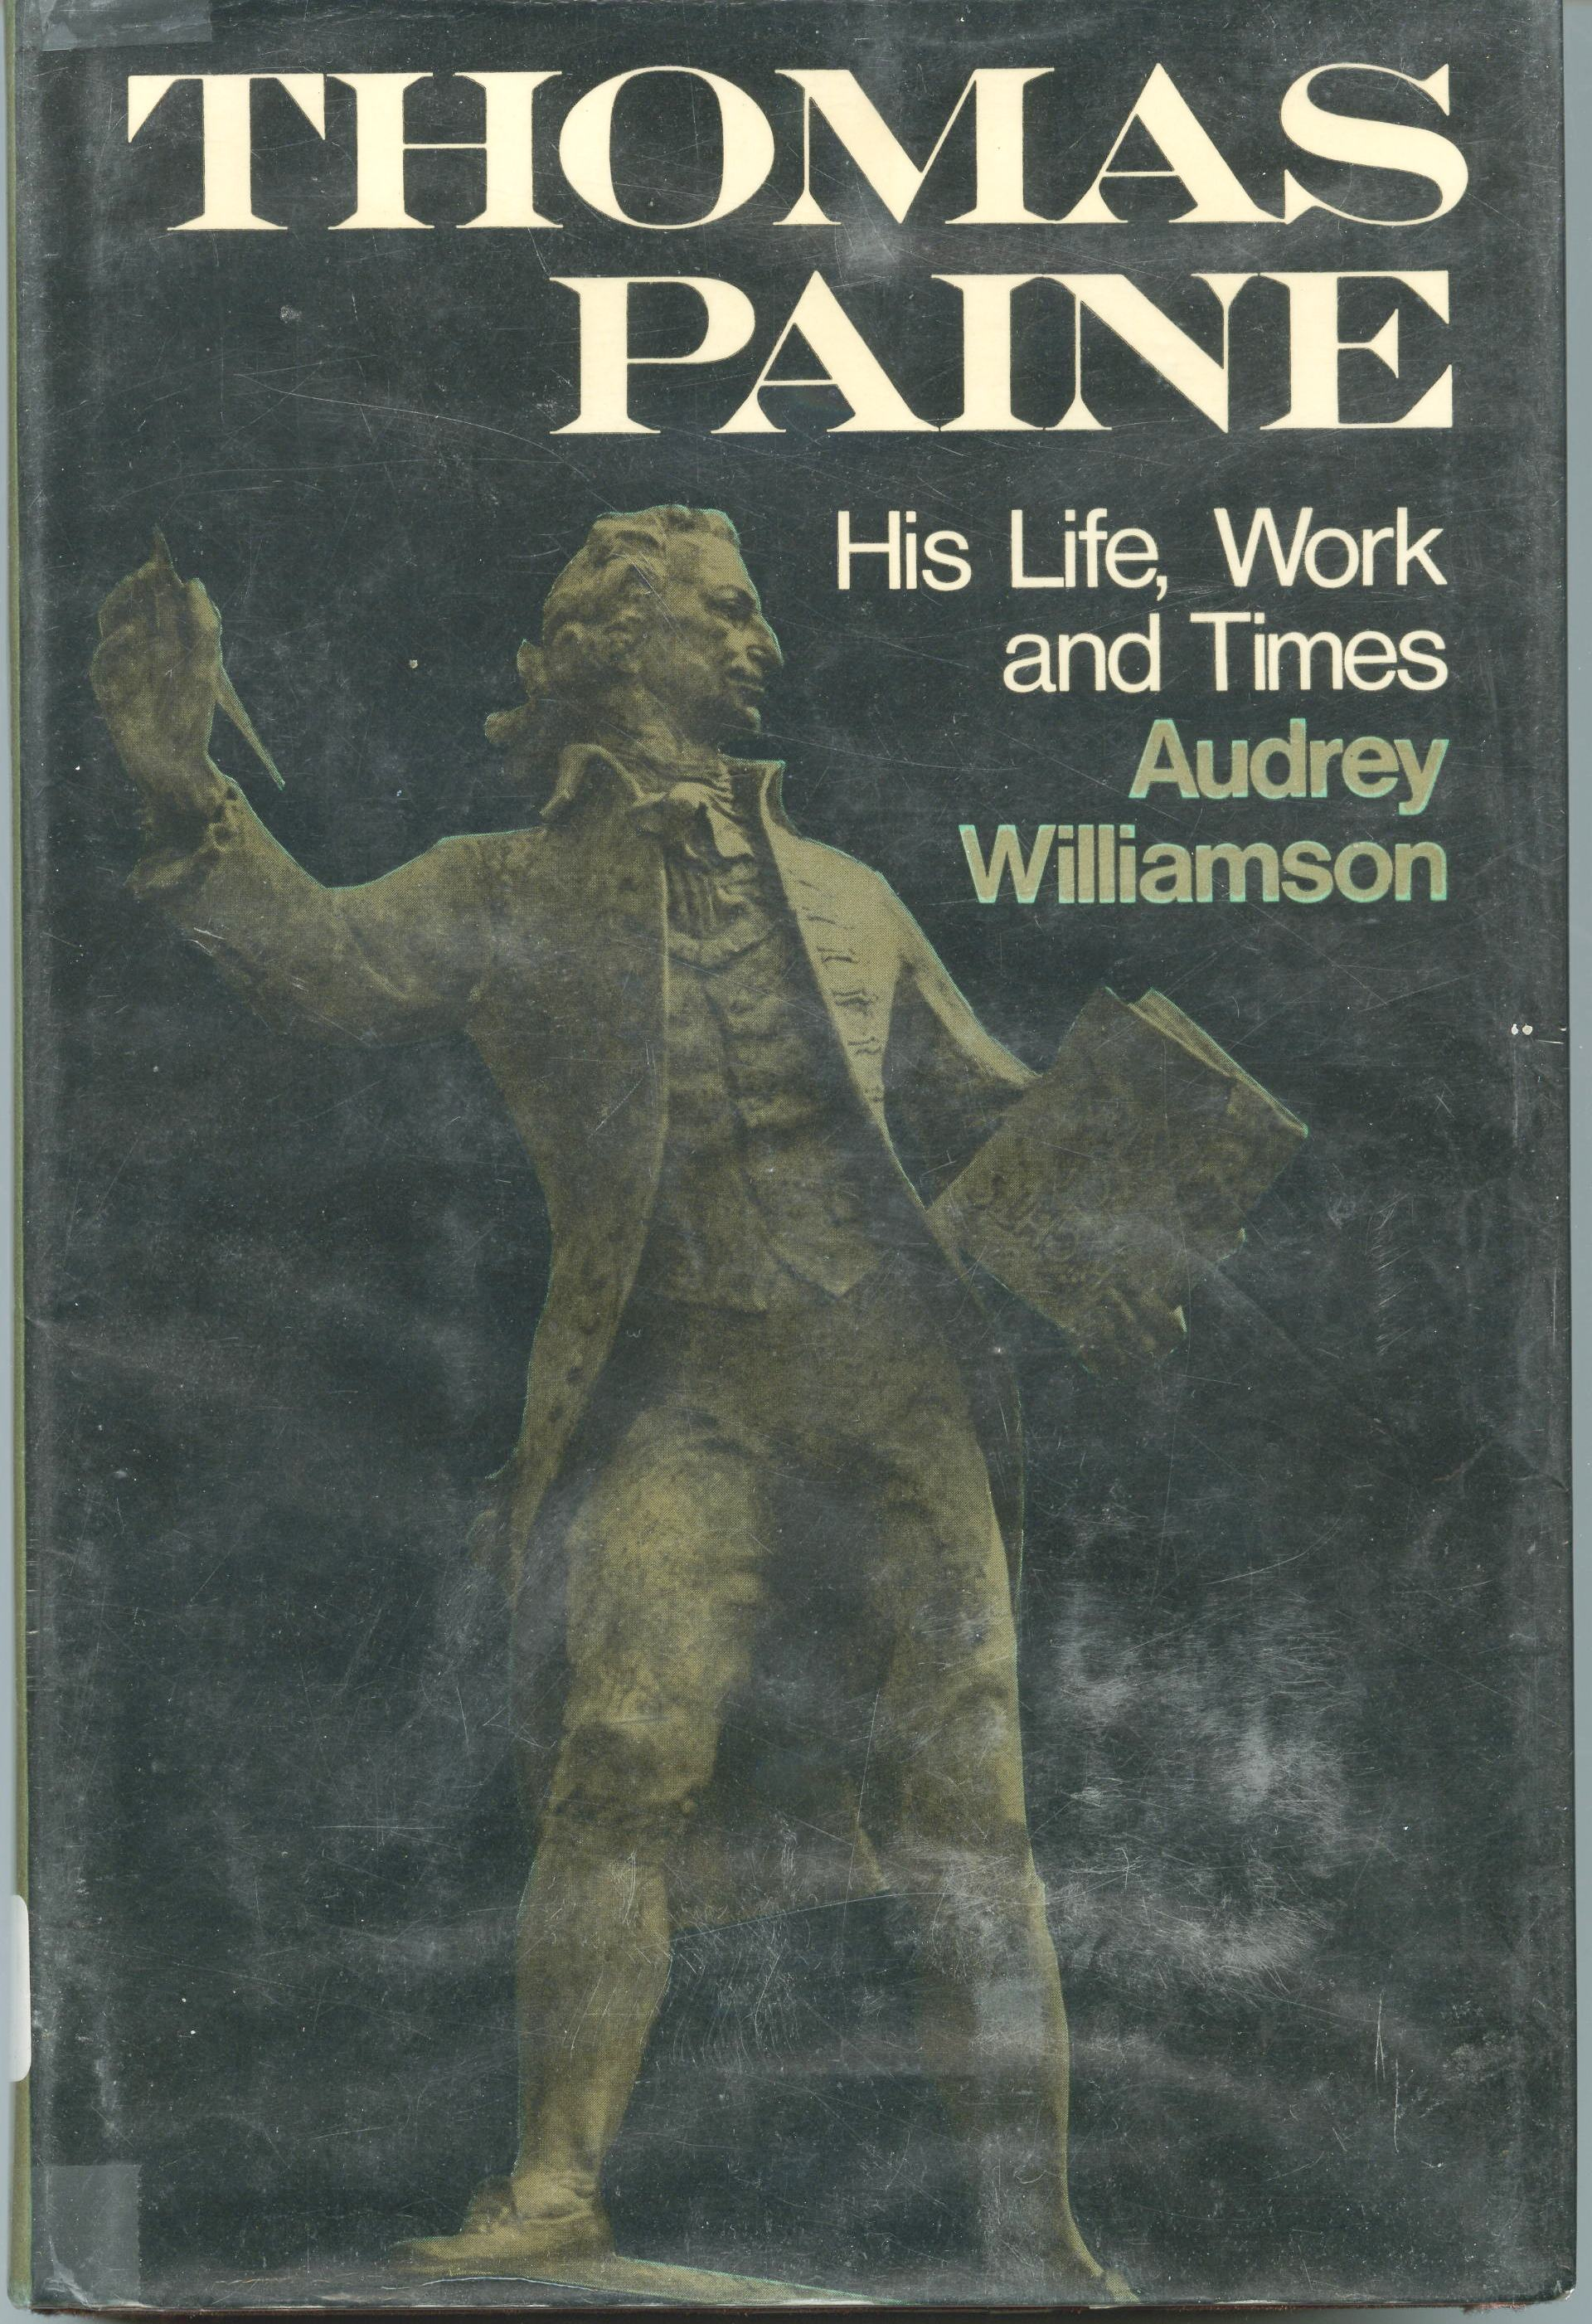 thomas paine friends inc thomas paine his life work and times audrey williamson 1973